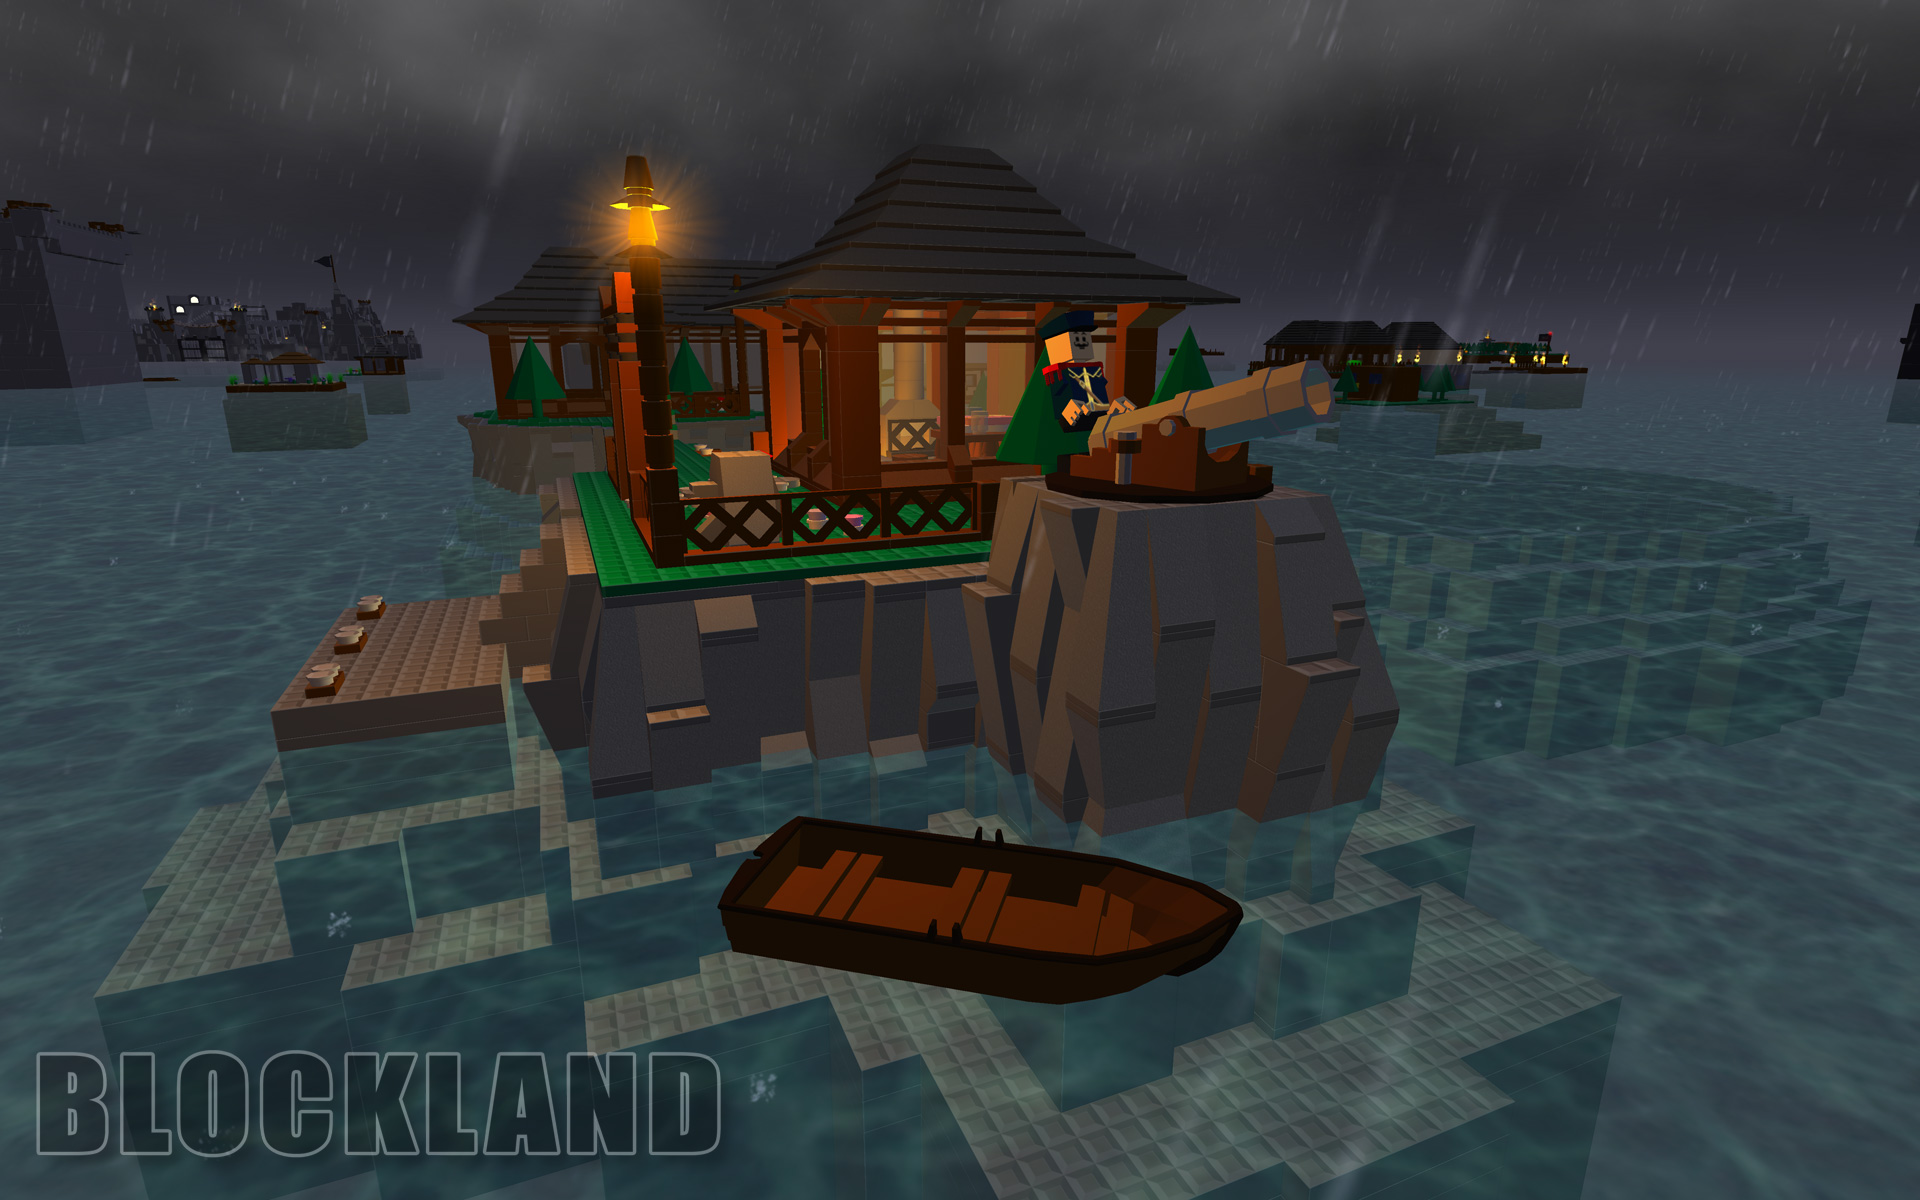 Rtb forums for blockland add-on downloads zombie faces.